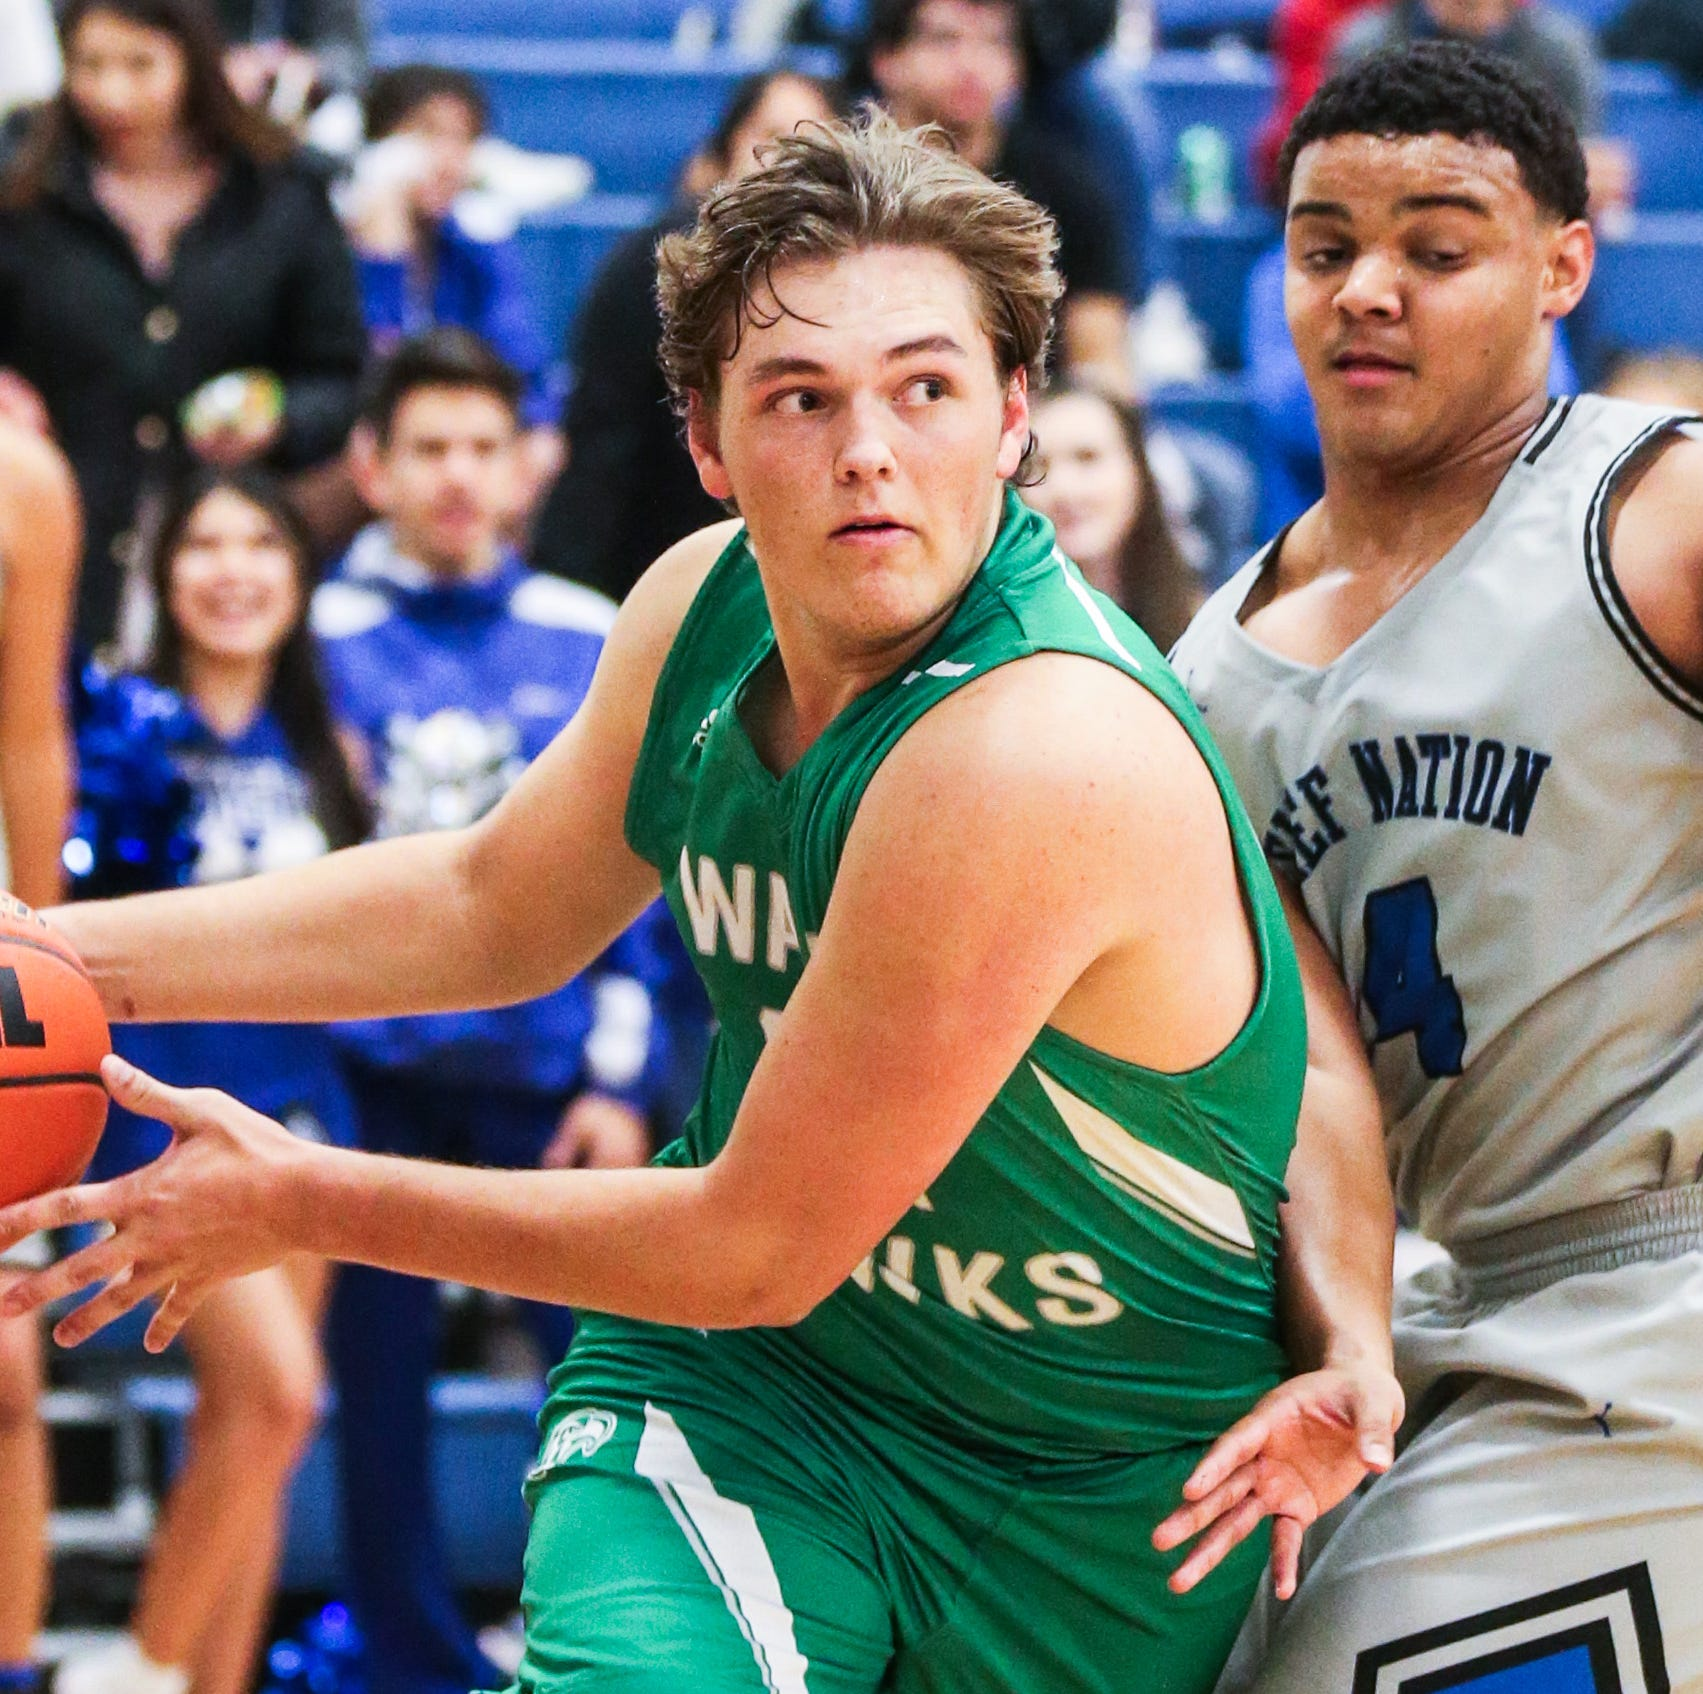 2019 All-West Texas Boys Basketball Team capsules